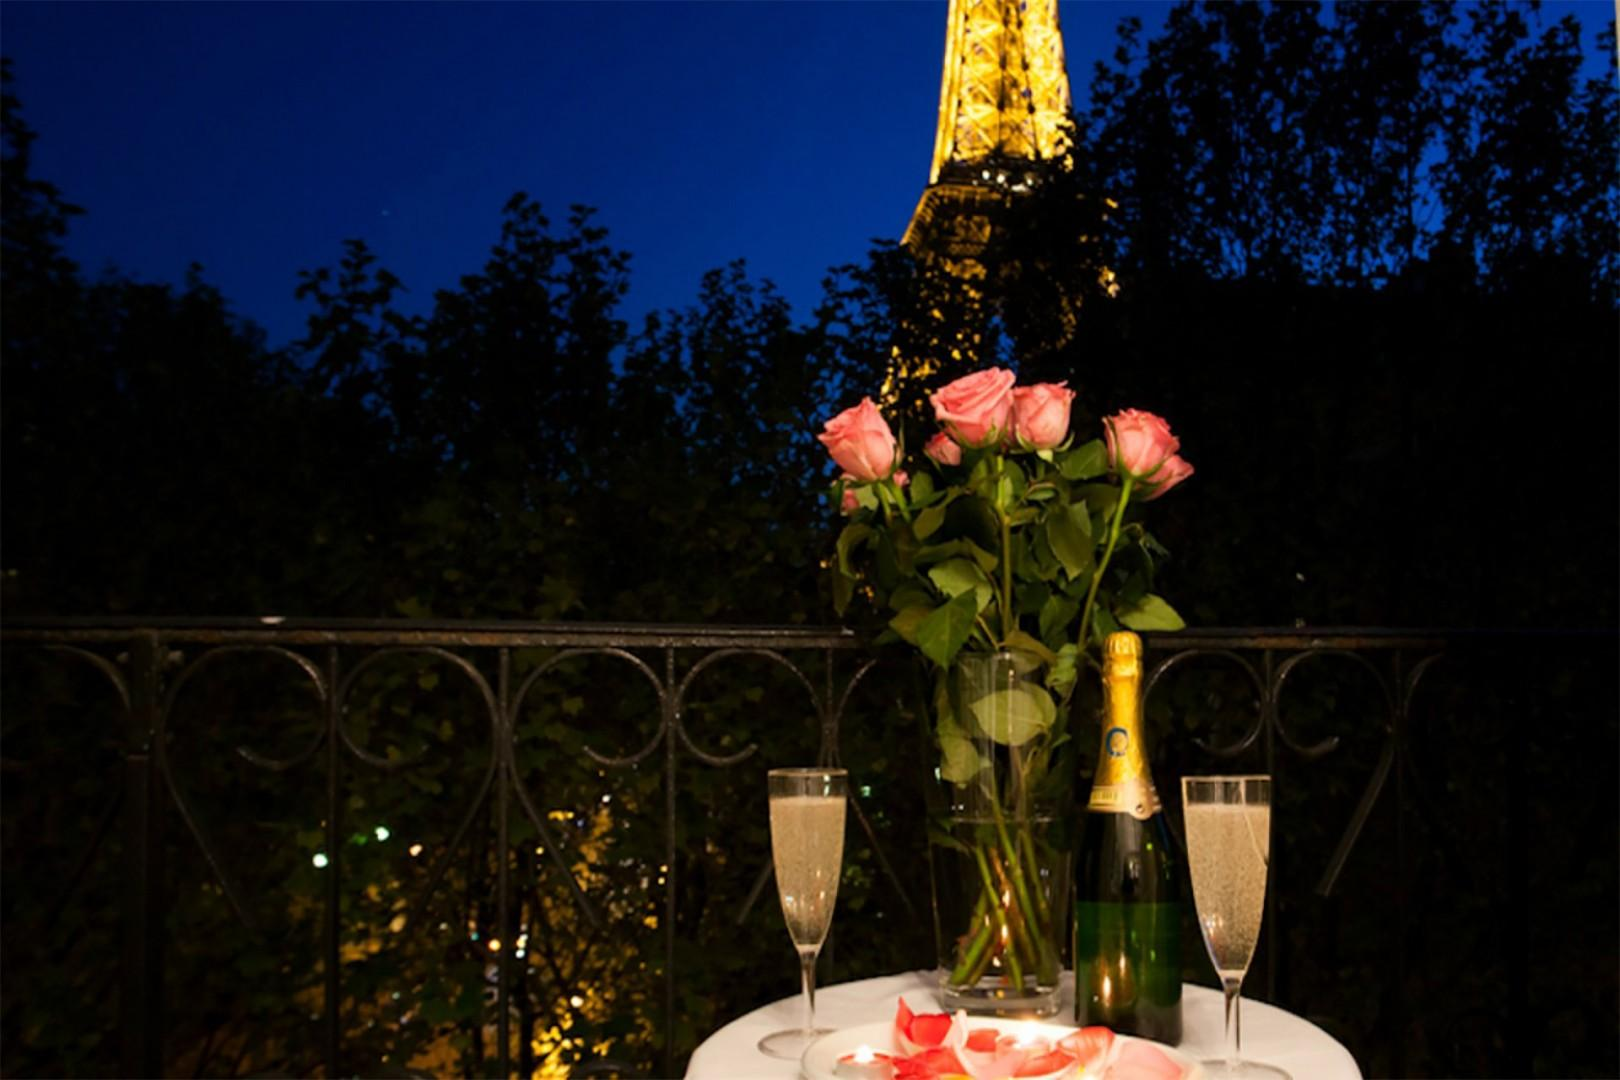 Enjoy cozy evenings on the balcony with fantastic Eiffel Tower views.